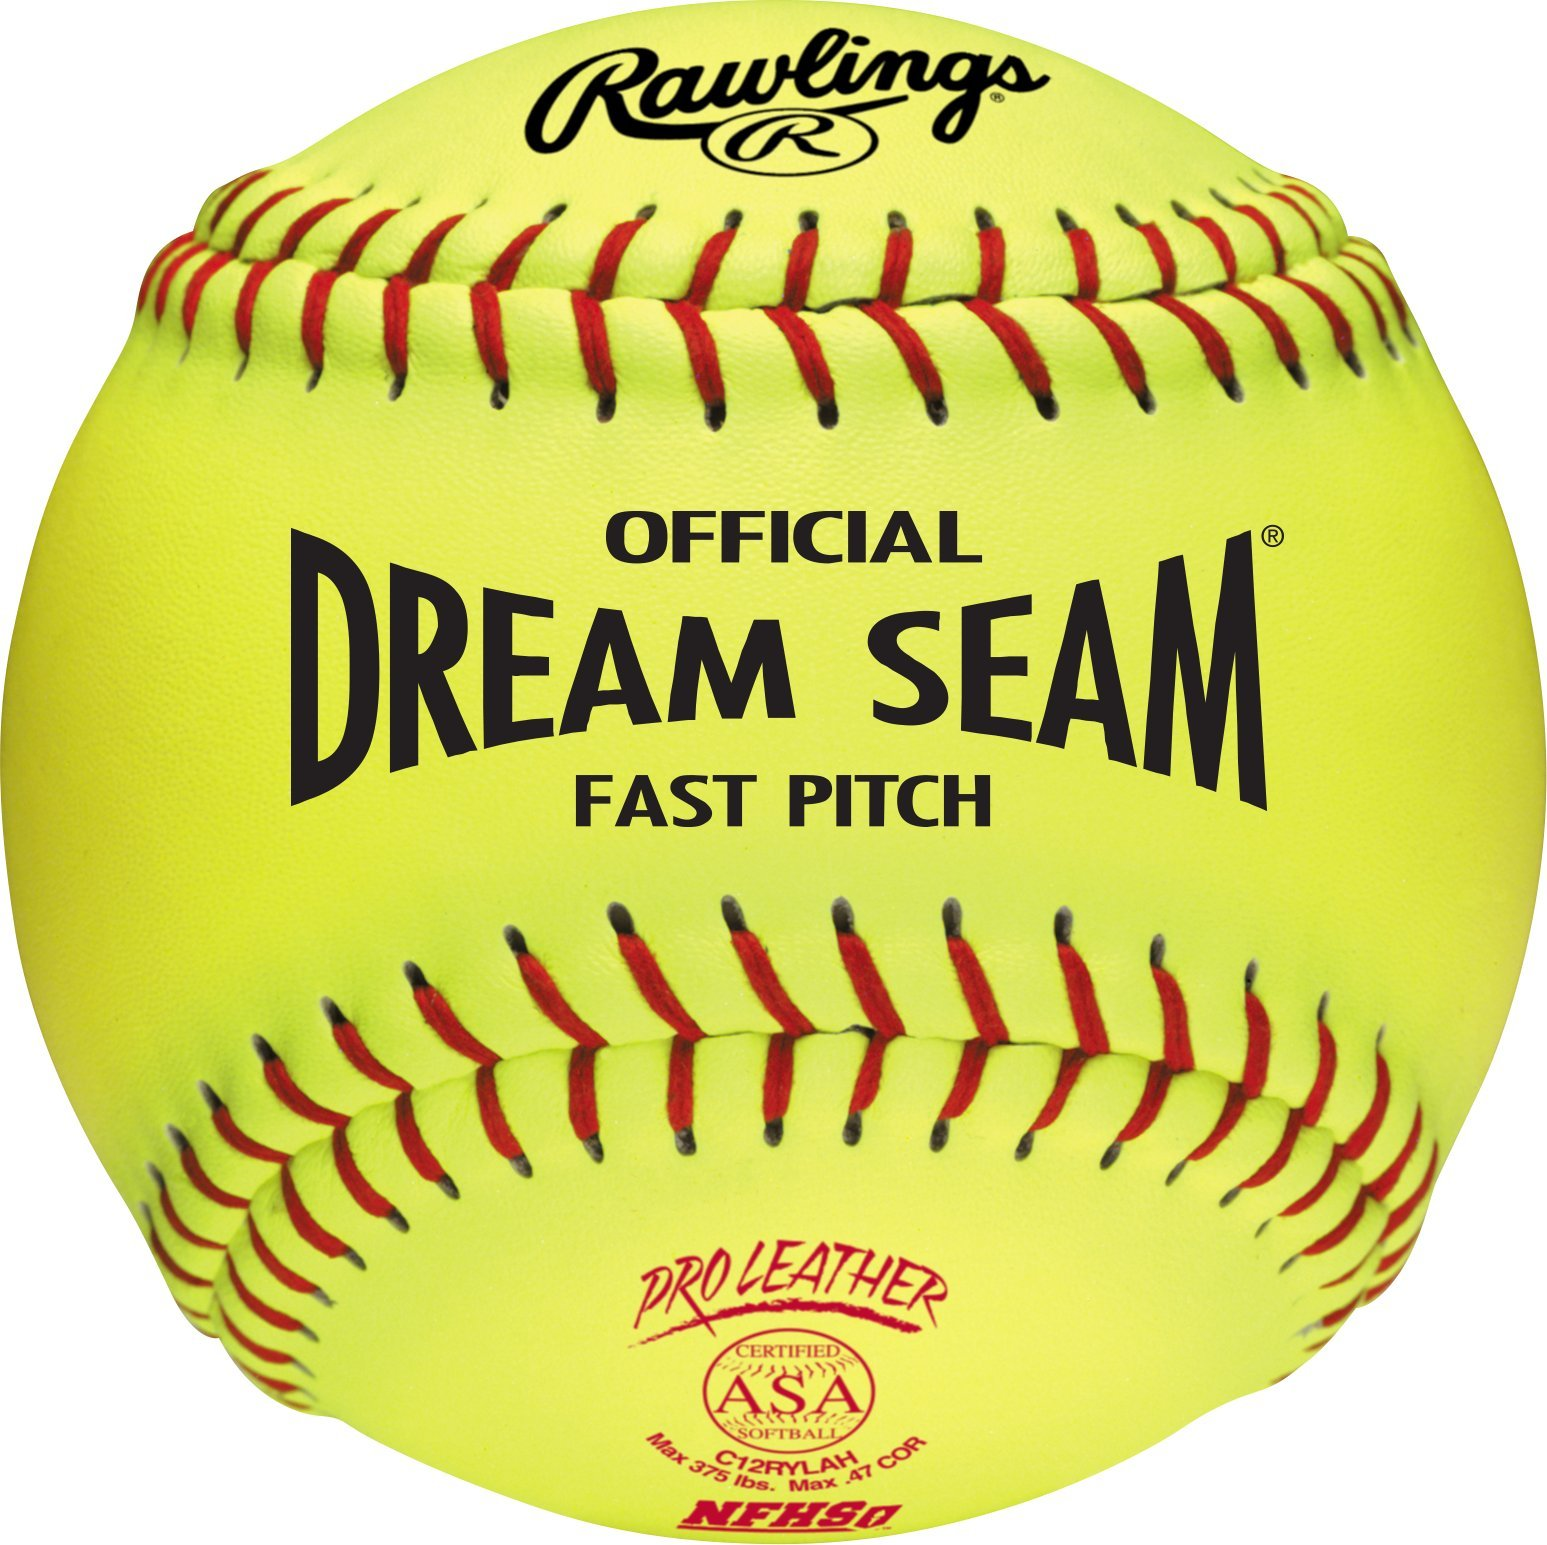 Rawlings Sporting Goods C12RYLAH Official ASA Dream Seam Fast Pitch Softballs (One Dozen), Yellow, Size 12 by Rawlings Sporting Goods